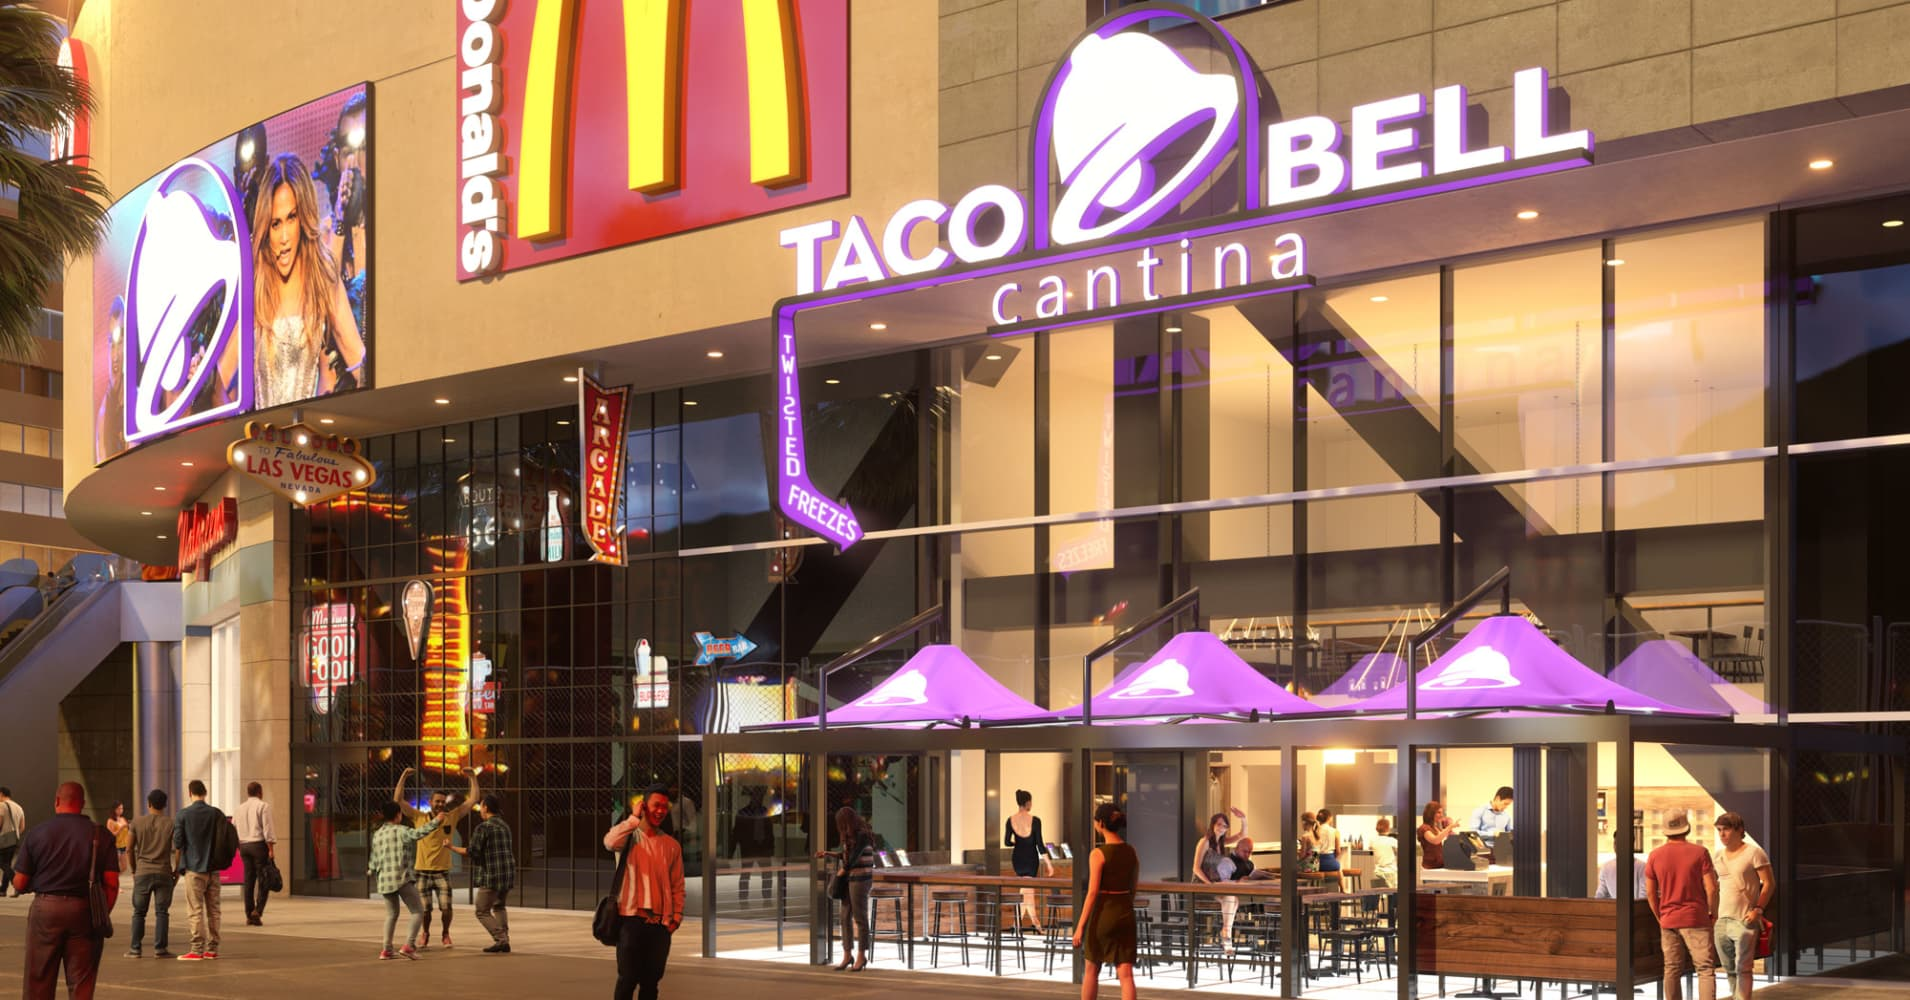 Taco Bell Goes All In On New Las Vegas Location